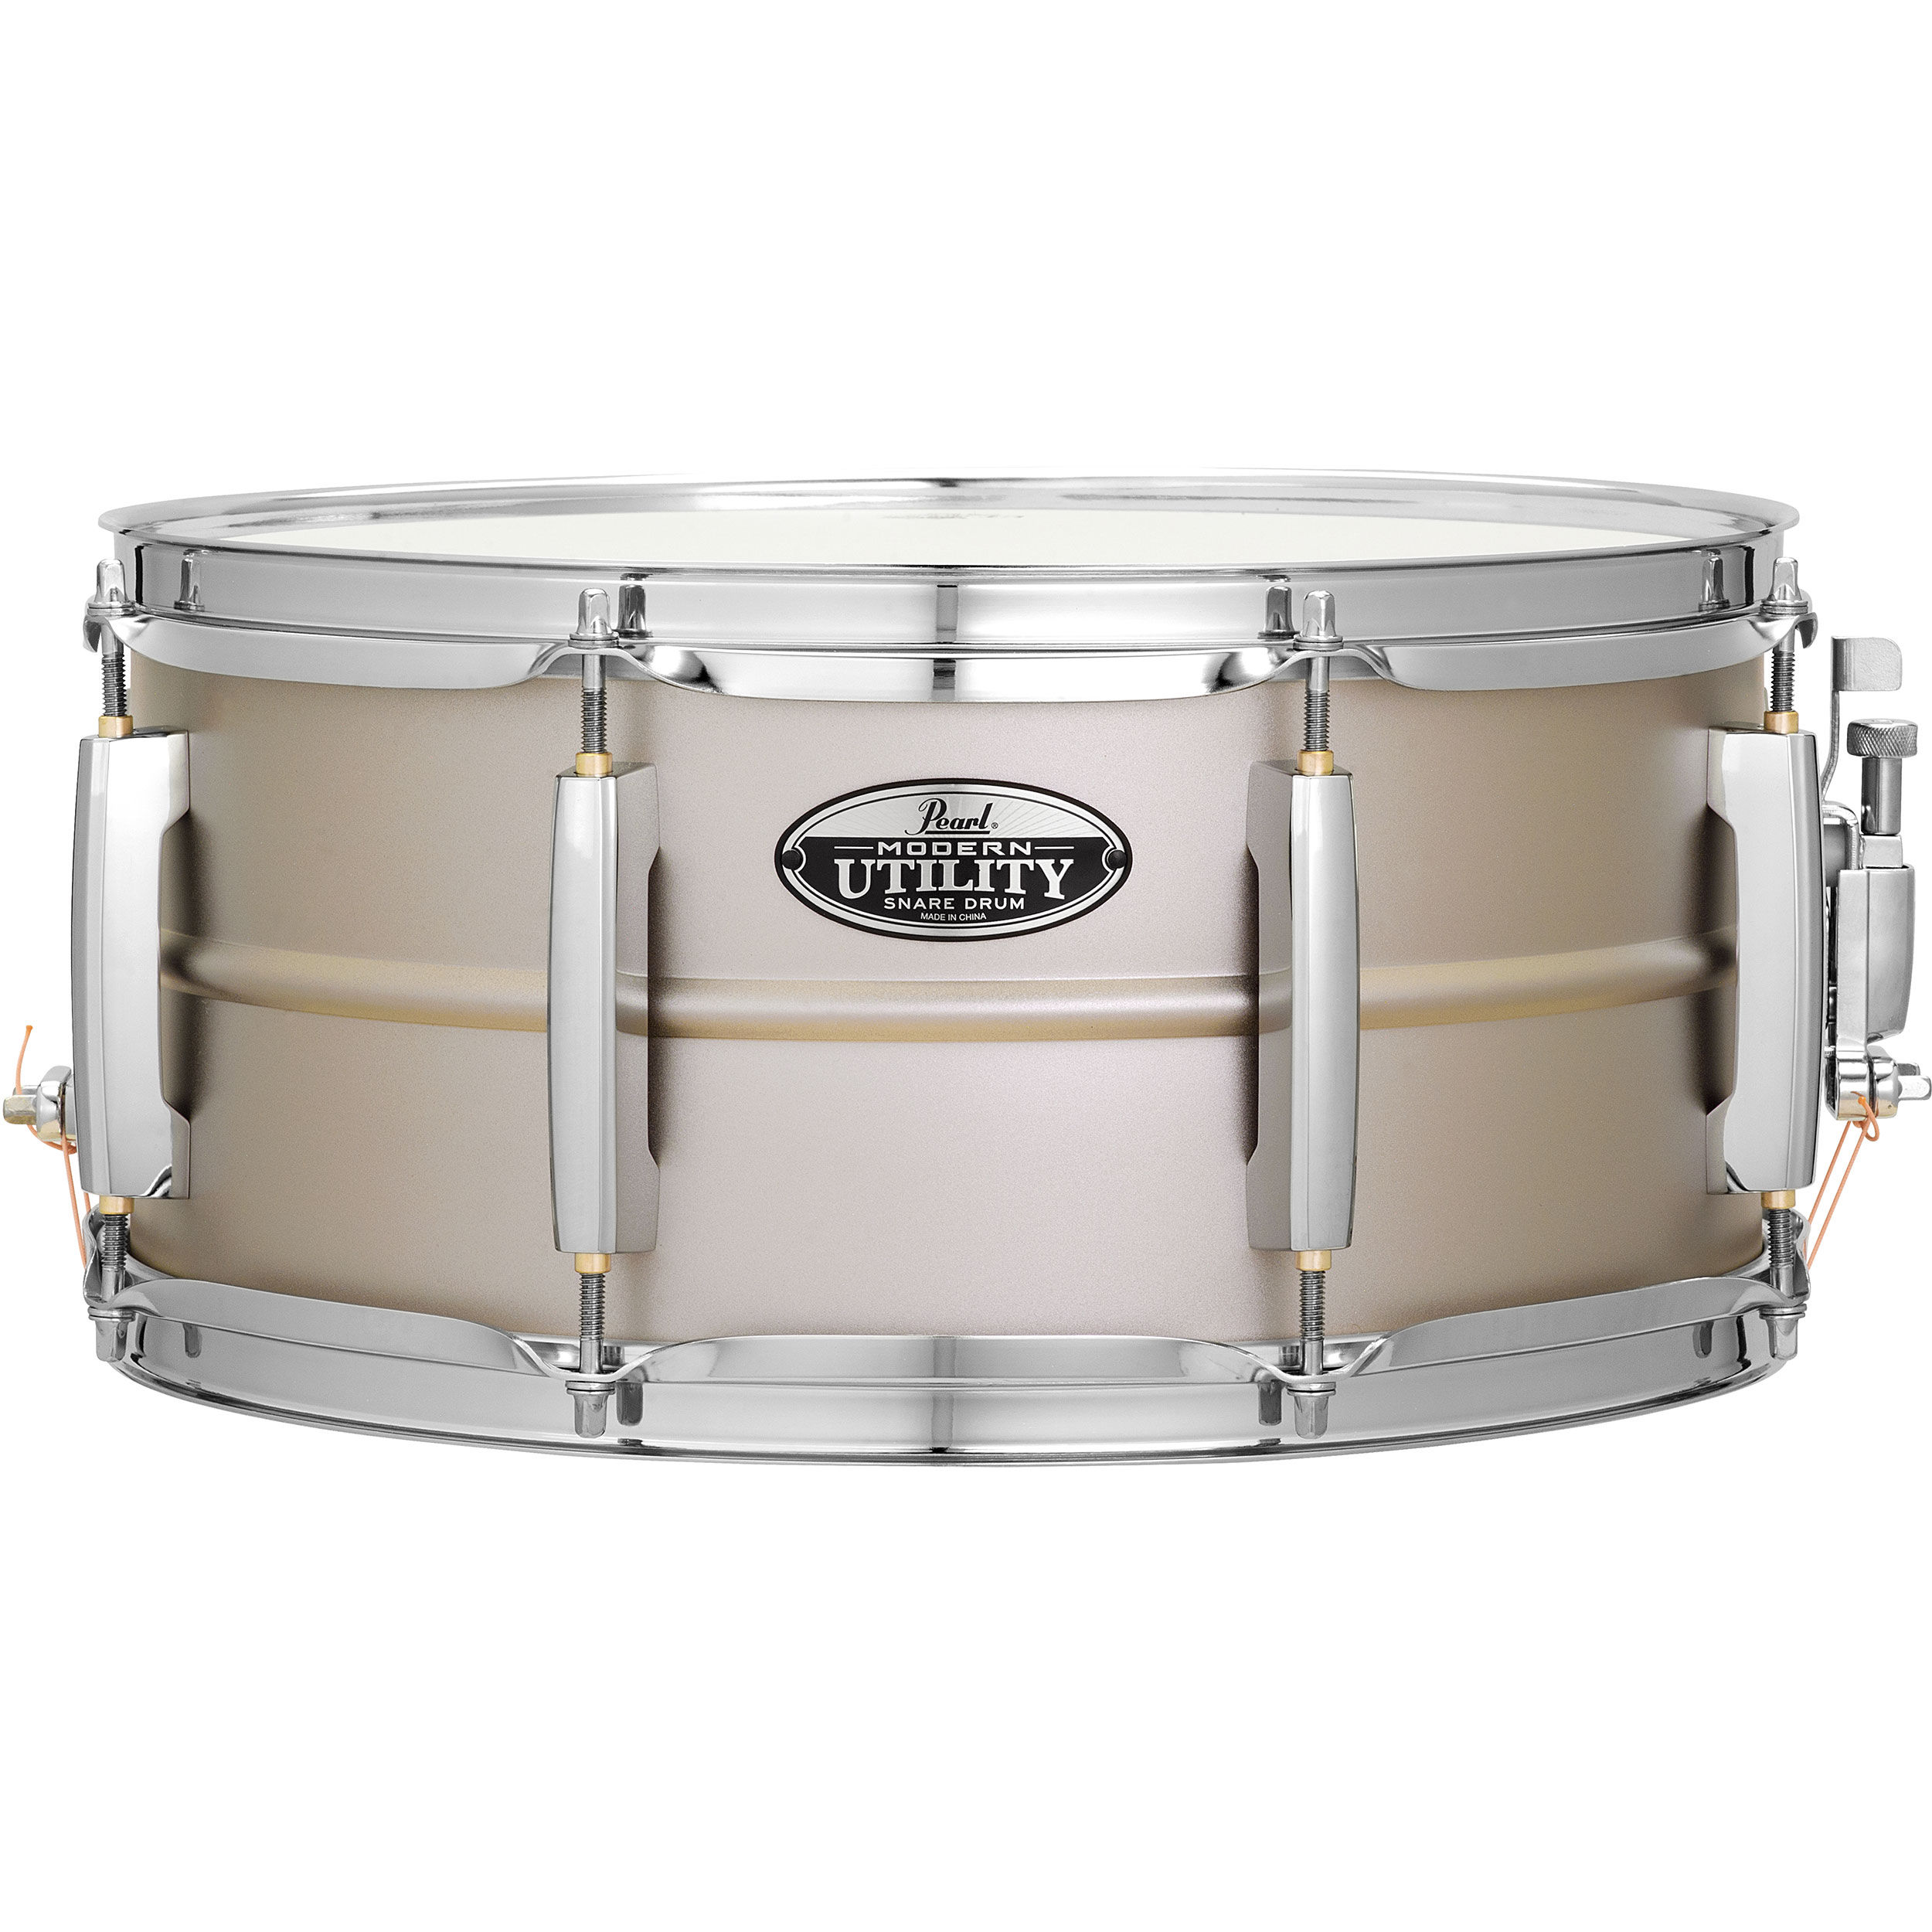 "Pearl 14"" x 6.5"" Modern Utility 1mm Beaded Steel Snare Drum"